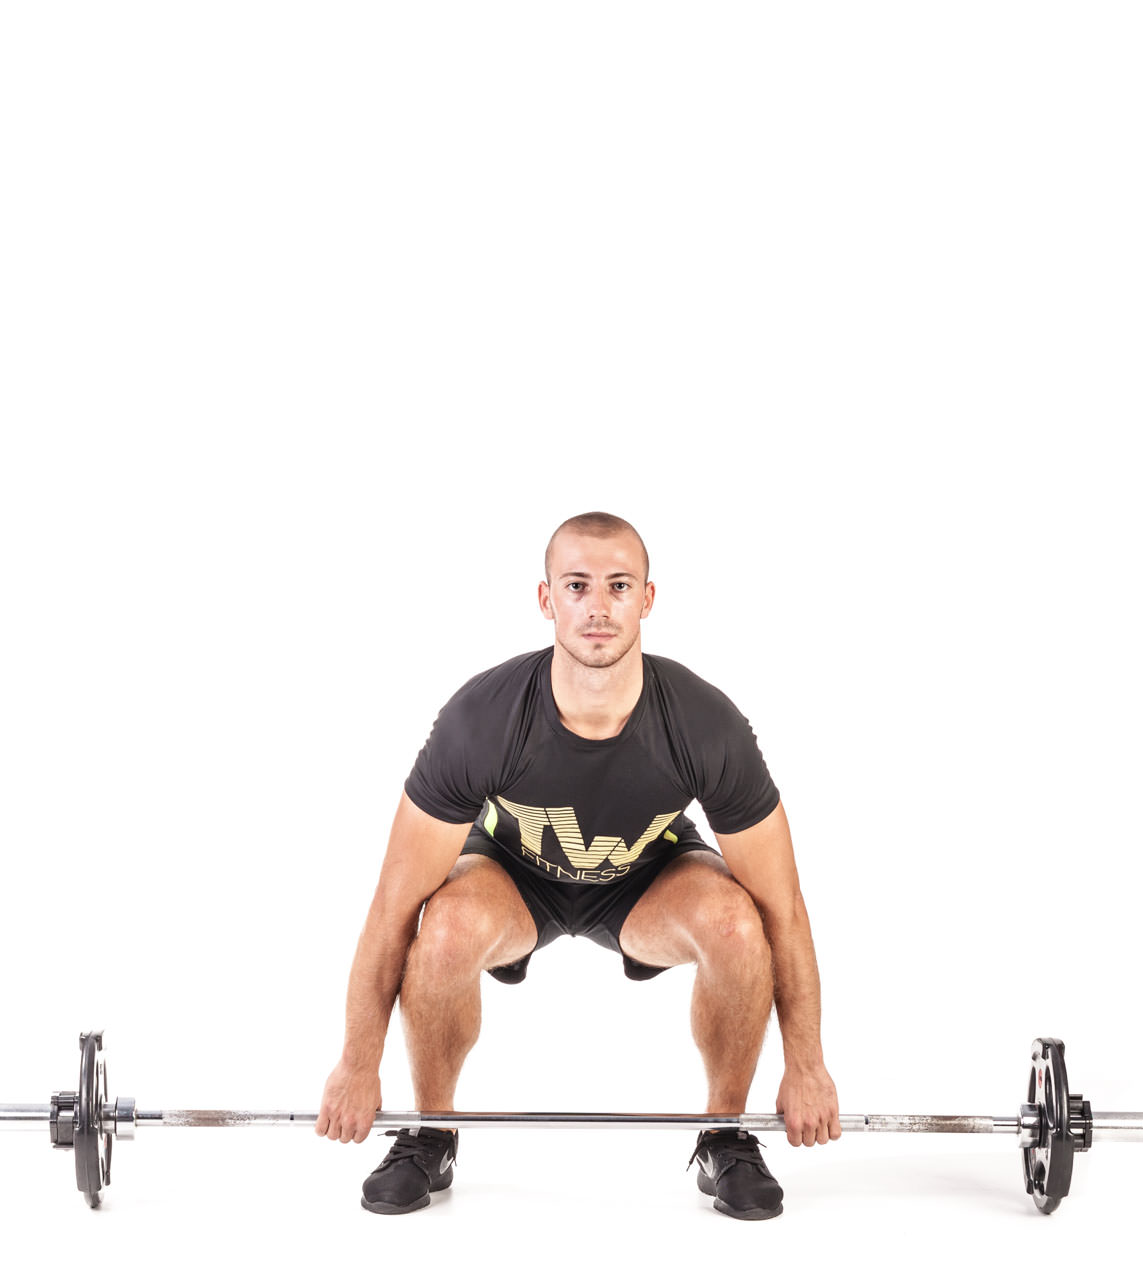 Barbell Deadlift frame #1